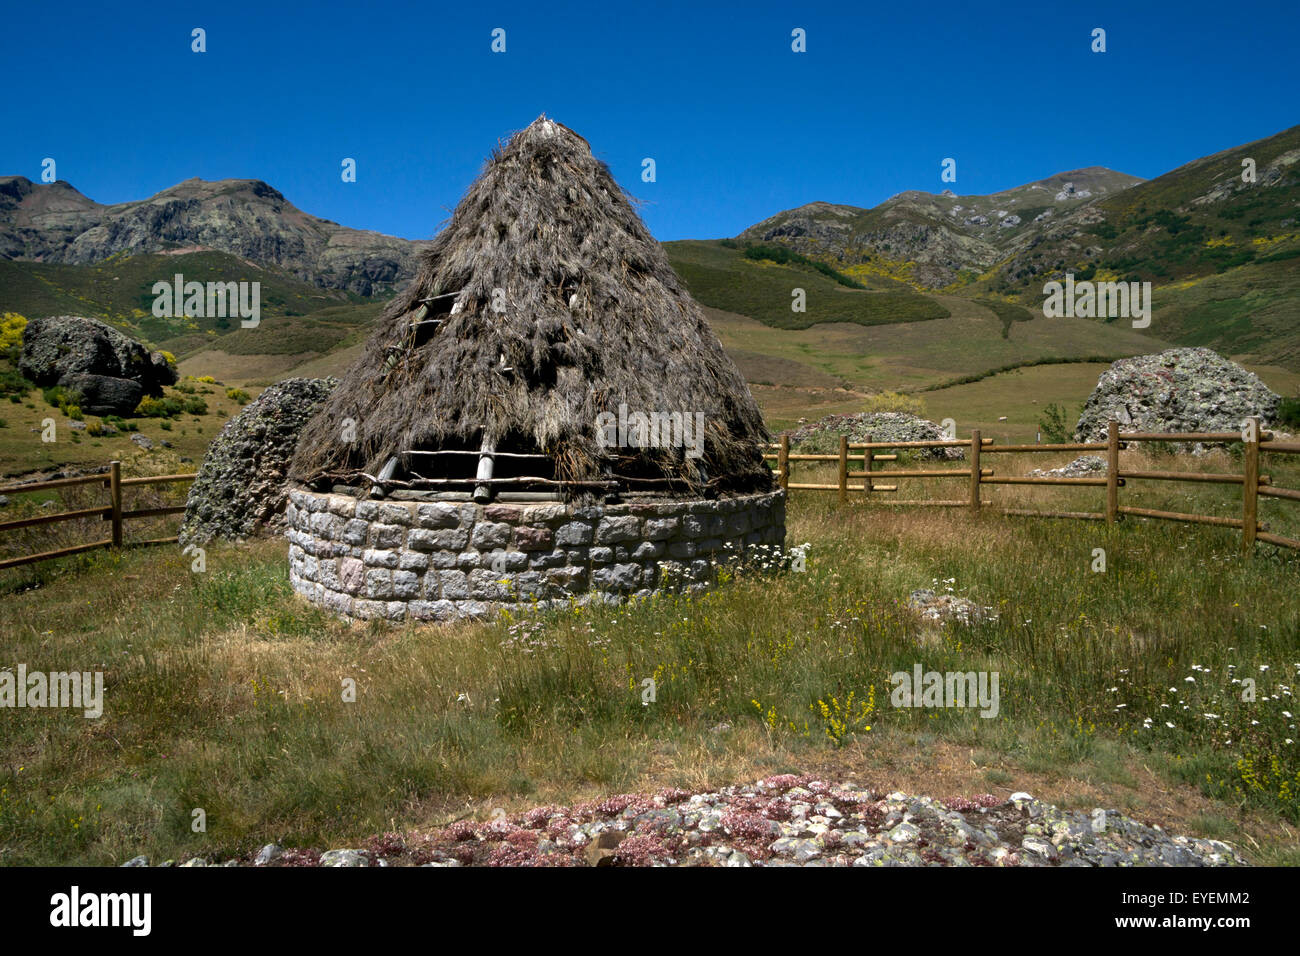 Old Hay stores in high hills of Pics de Europa, Asturias,Northern Spain - Stock Image